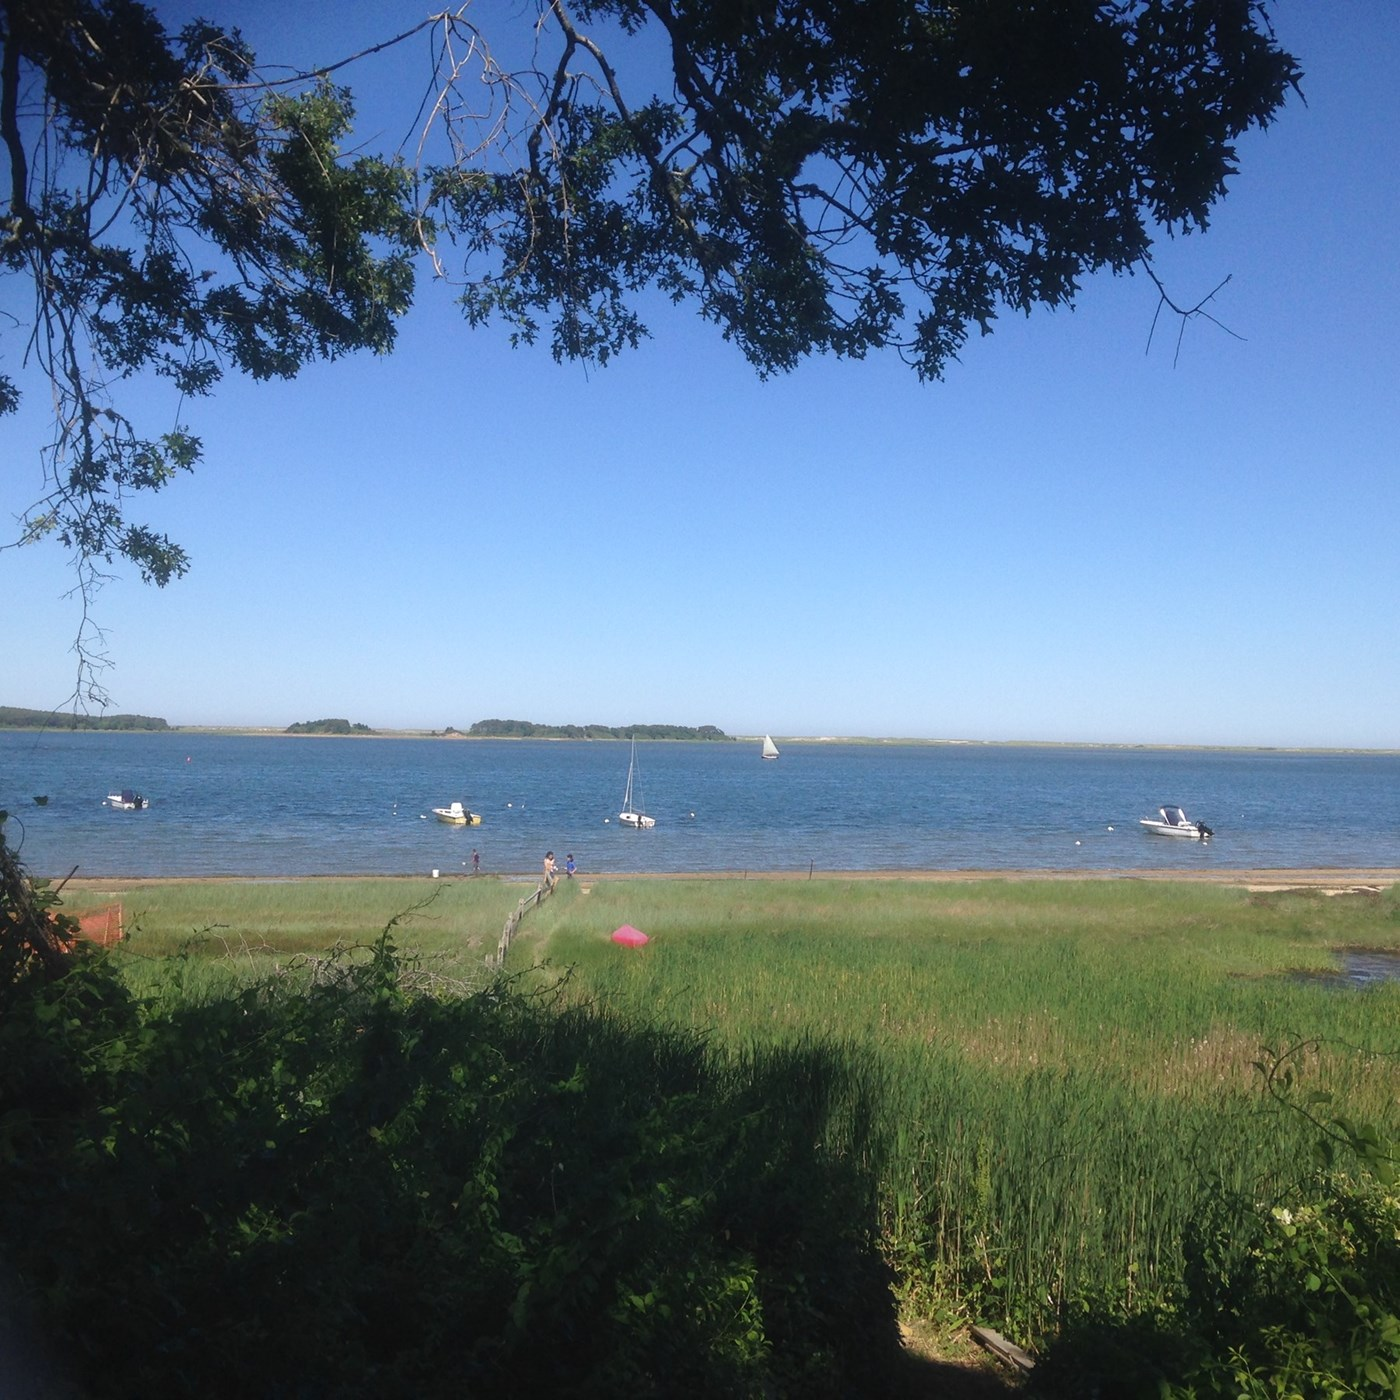 Orleans Vacation Rental Home In Cape Cod MA 02653, 3/10ths